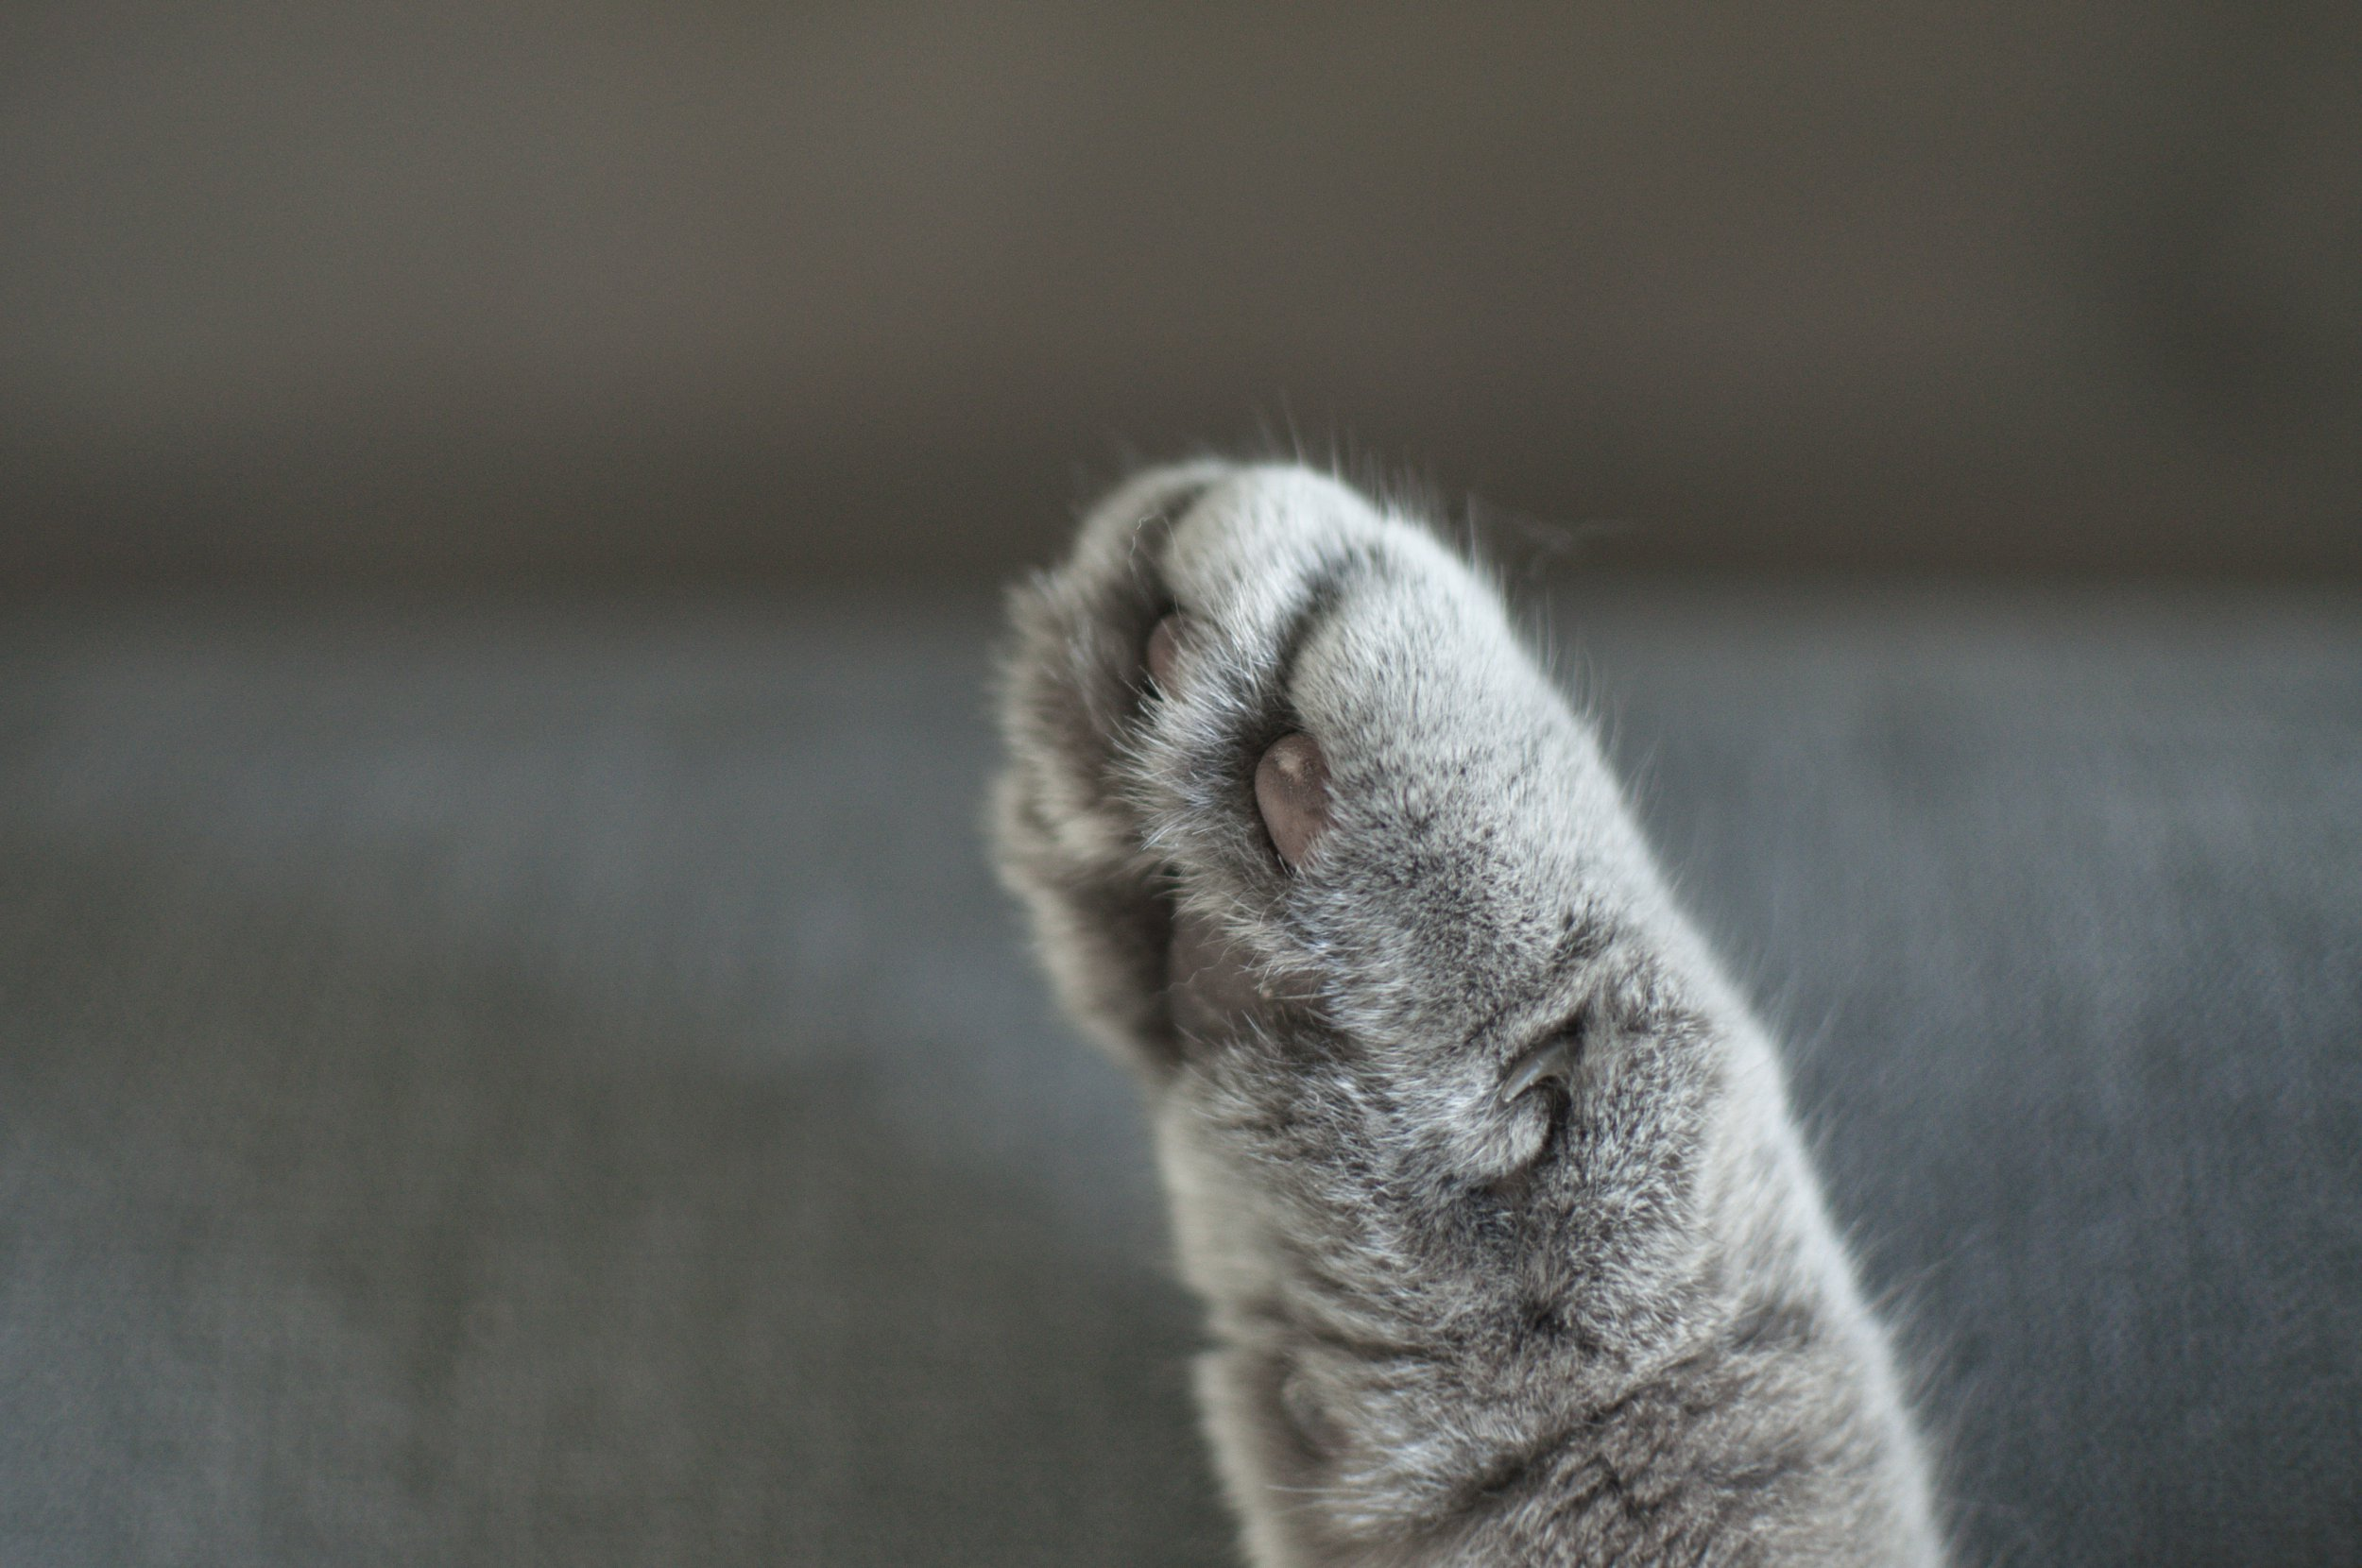 How to trim your cat's claws safely